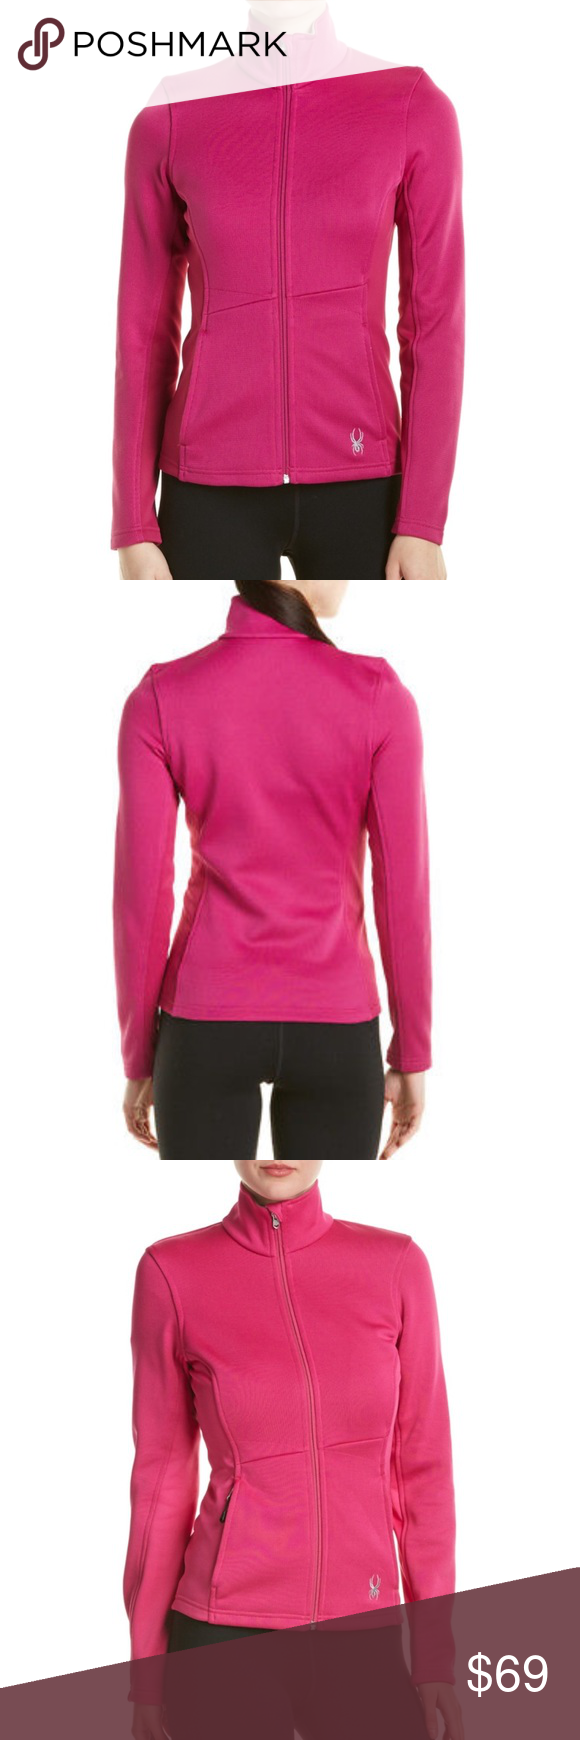 Spyder jewel core voila pink zip up sweater jacket NWT | Jewel ...